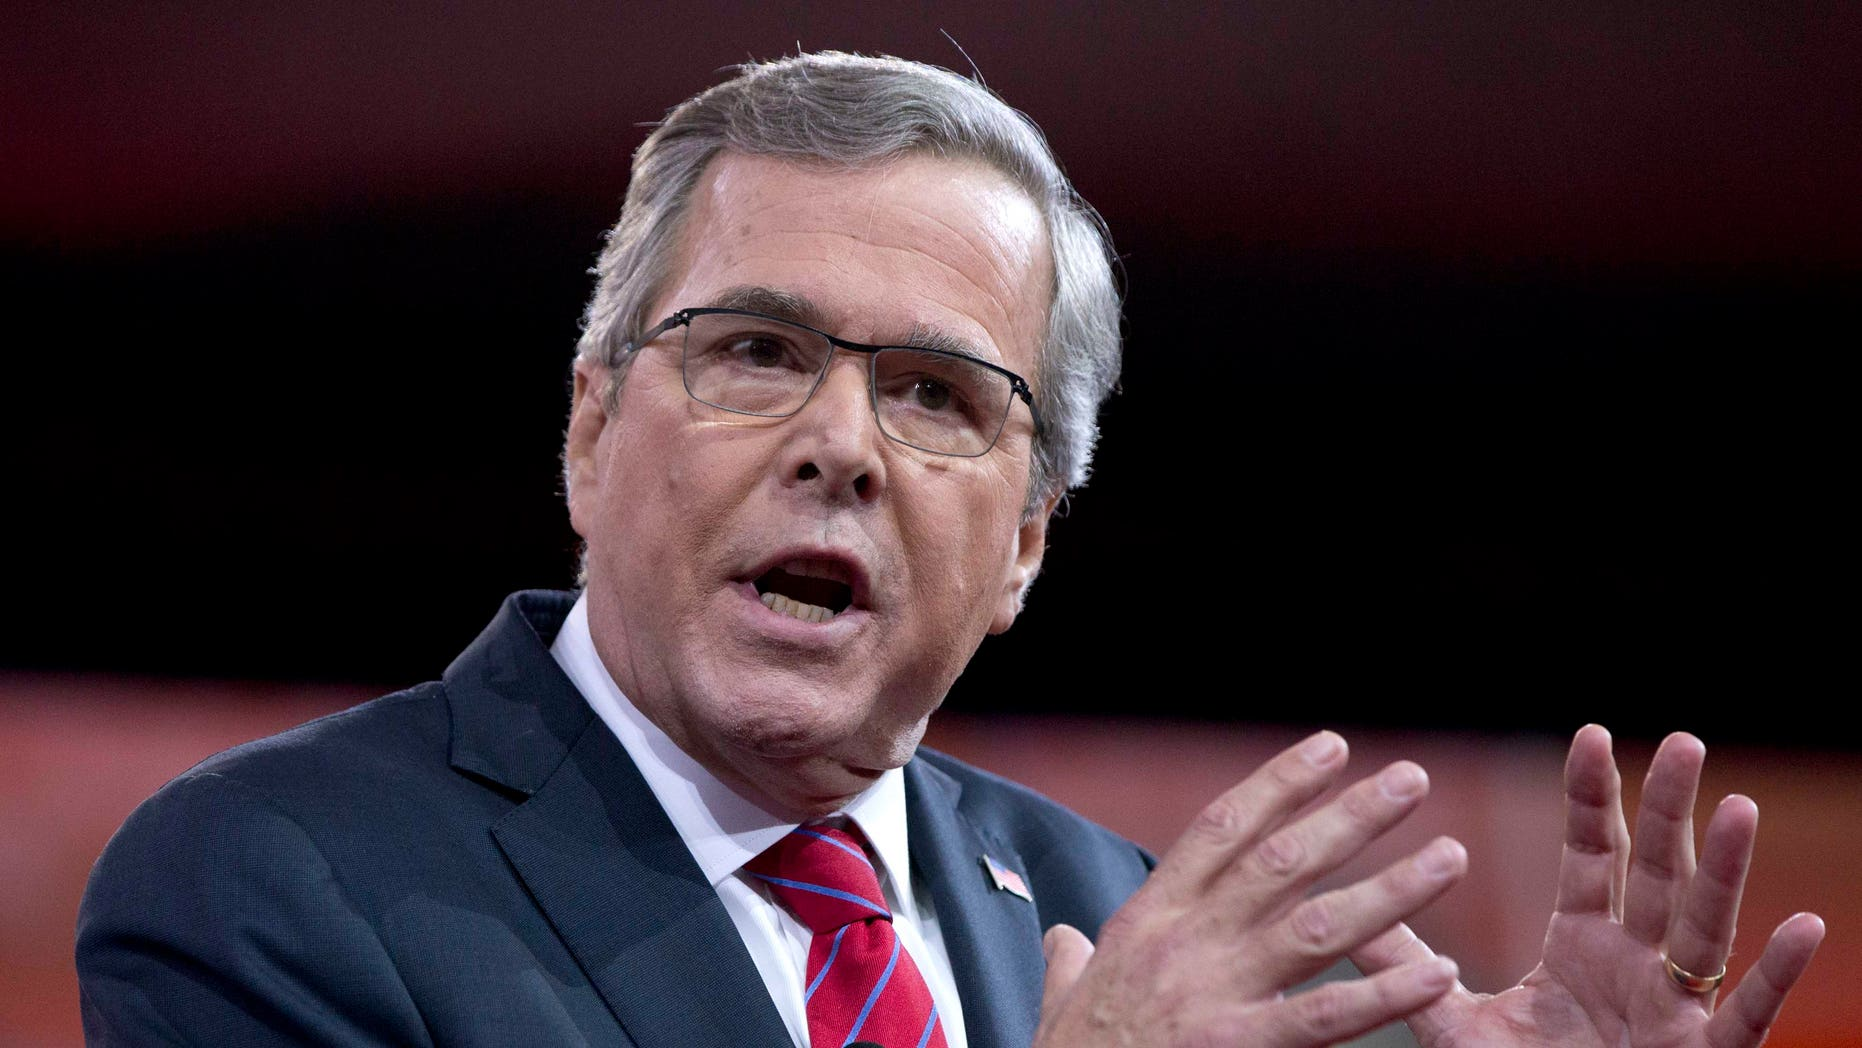 Former Florida Gov. Jeb Bush speaks during the Conservative Political Action Conference (CPAC) in National Harbor, Md., Friday, Feb. 27, 2015. (AP Photo/Carolyn Kaster)